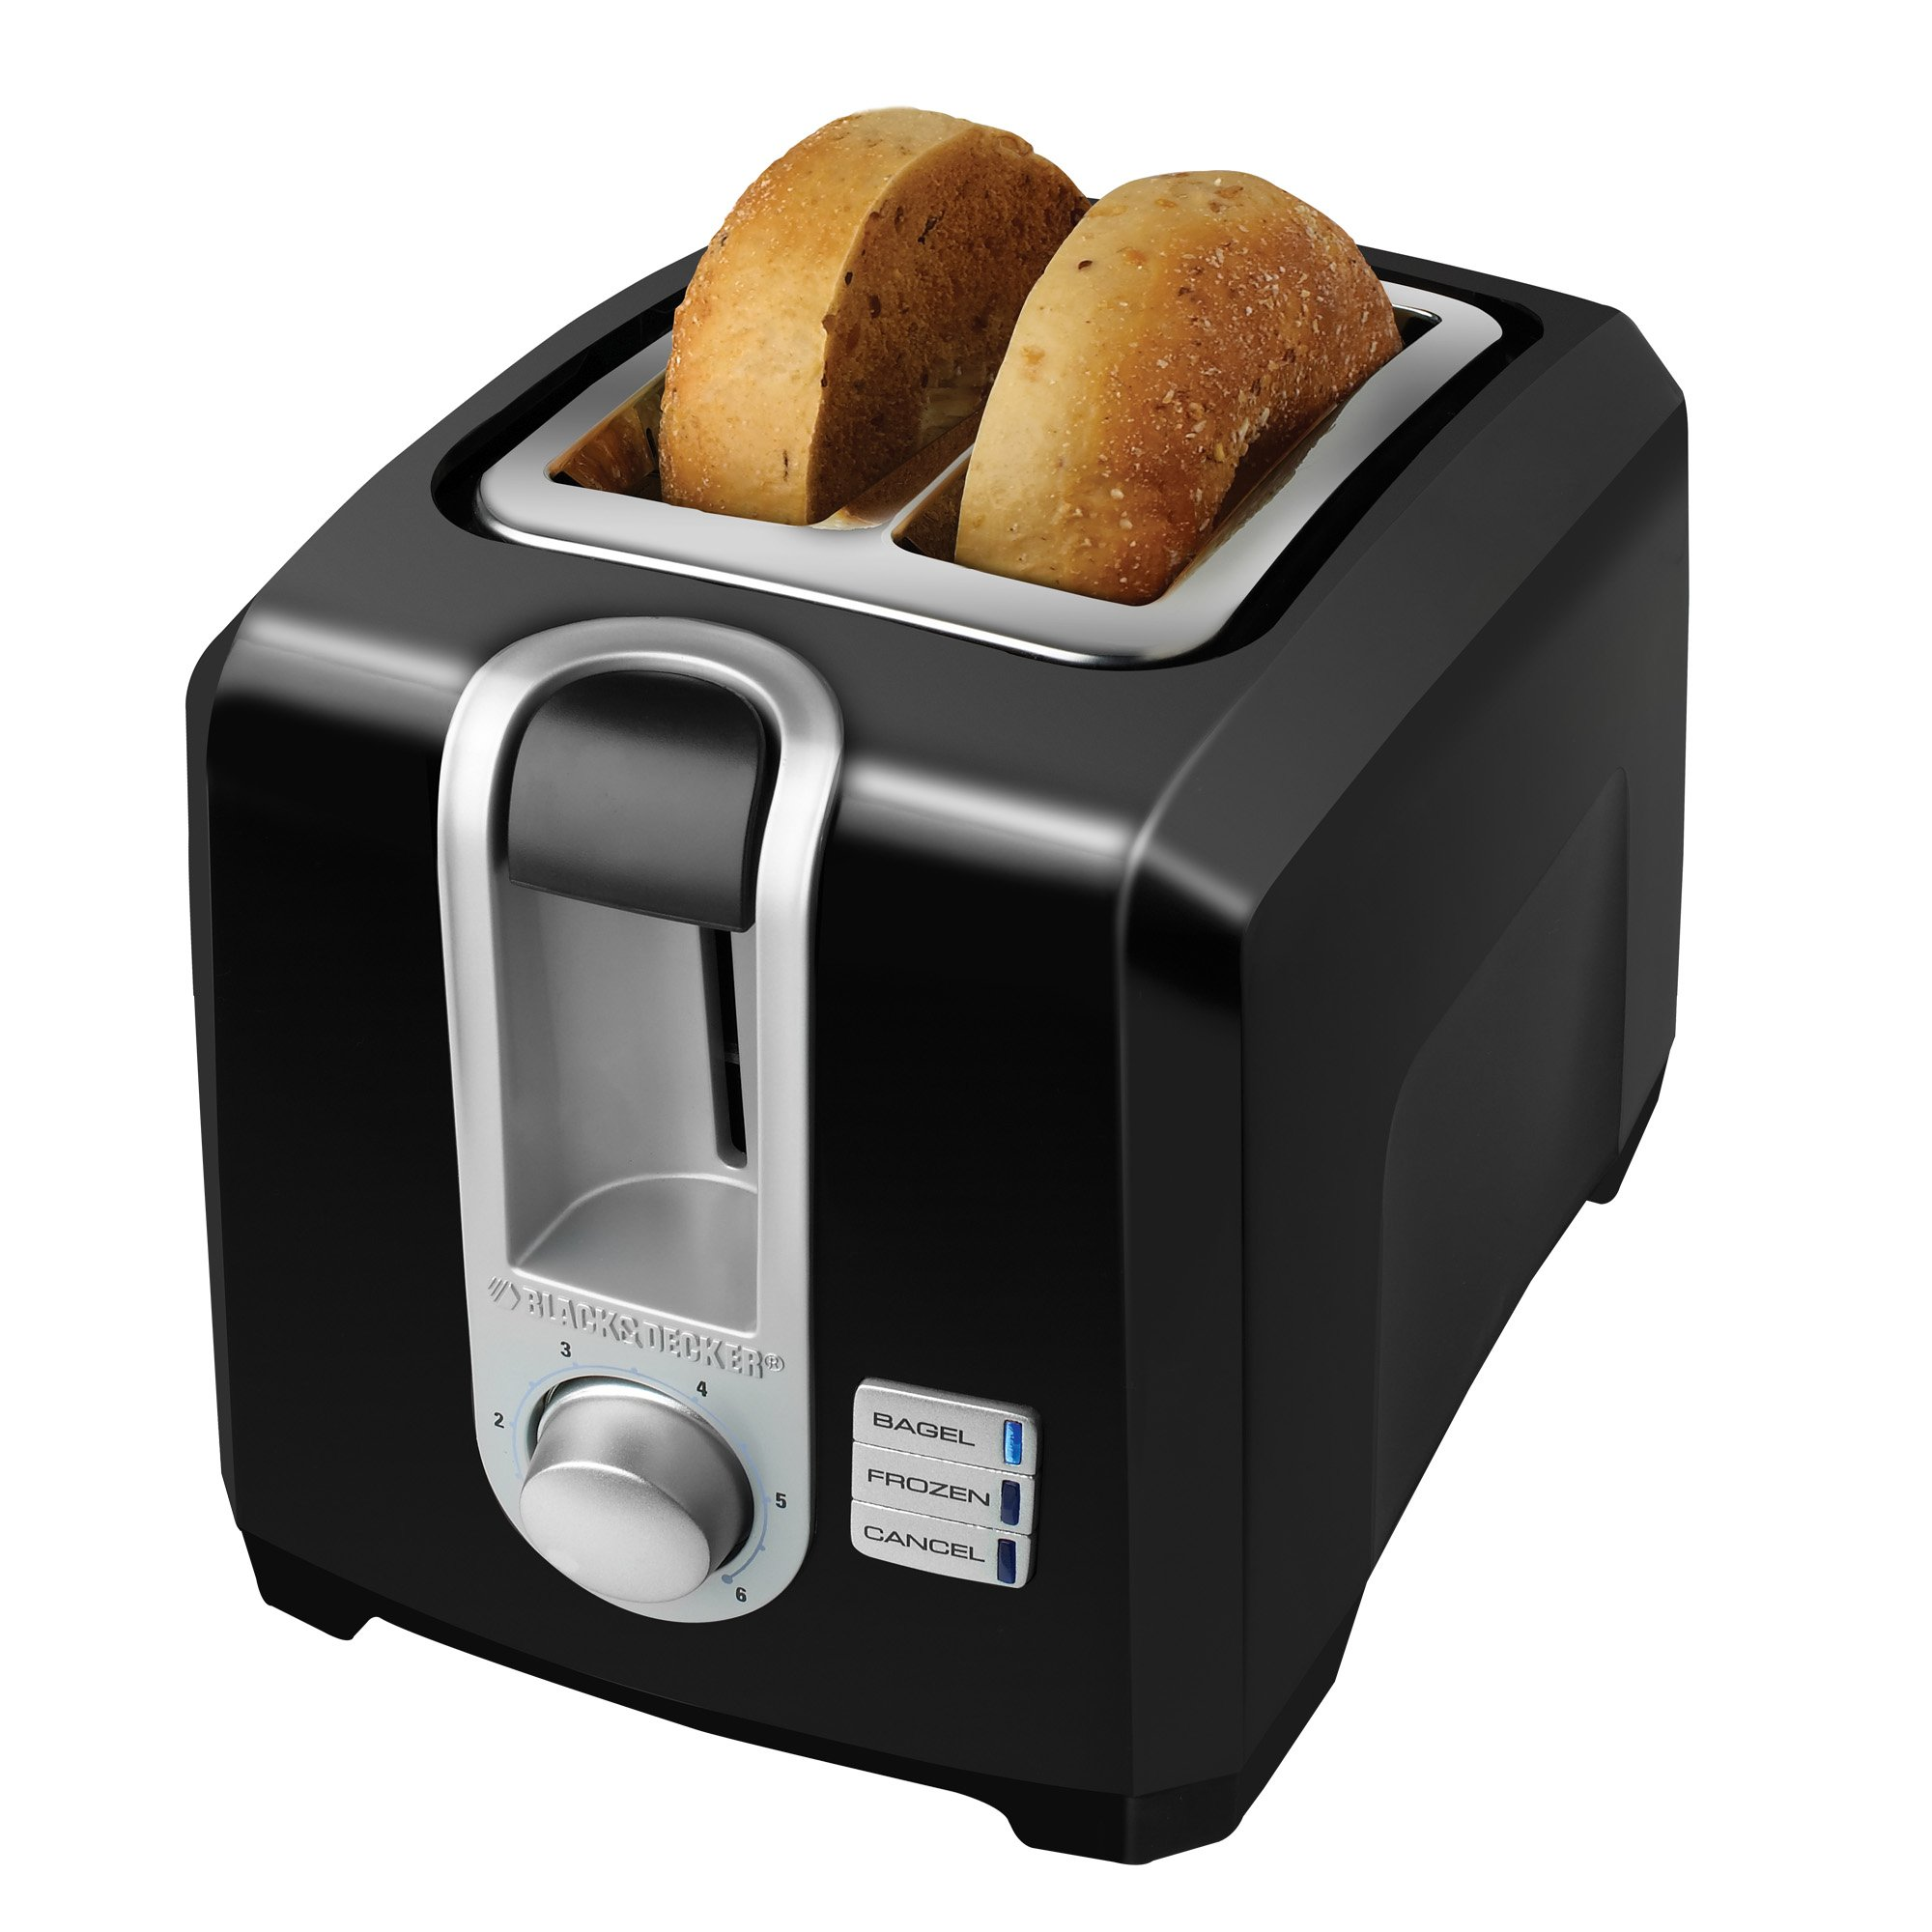 steel professional black slot stainless bagel toaster itm extra wide slice